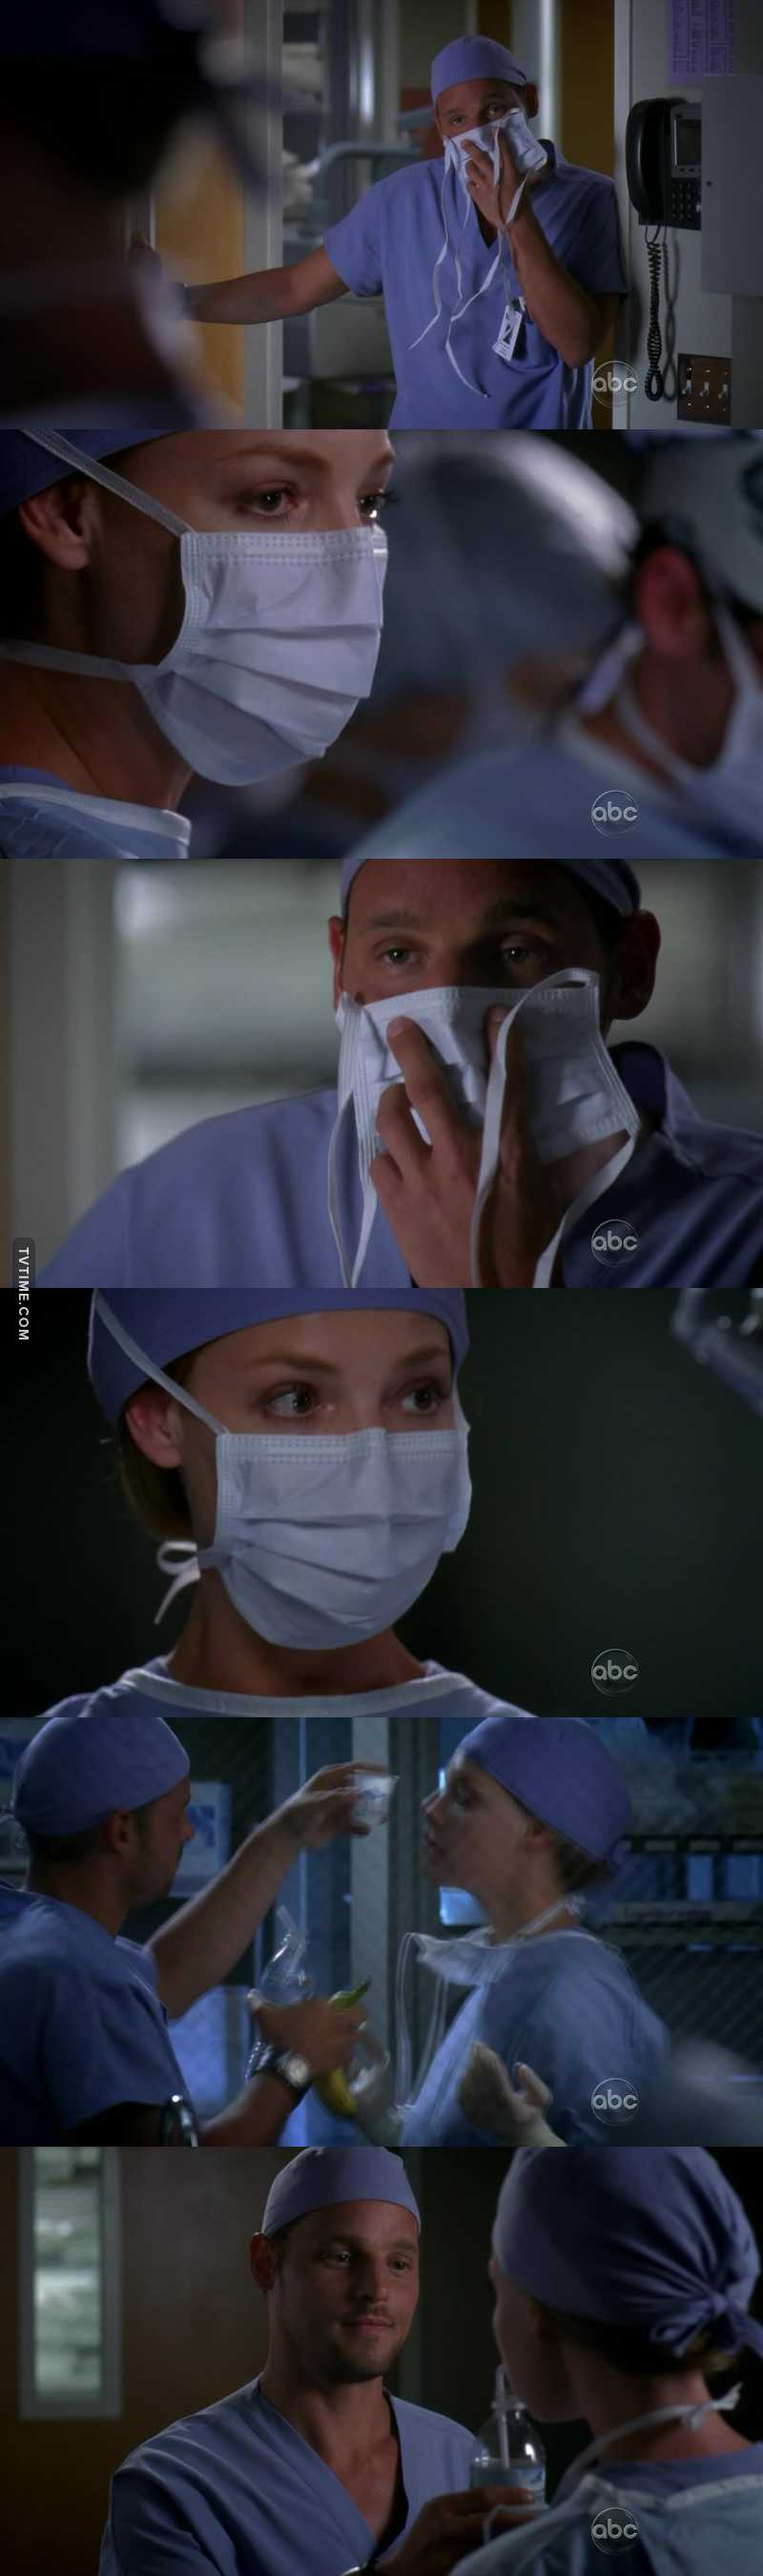 Find someone to yell at you until you take your medicine, like Karev. 💕